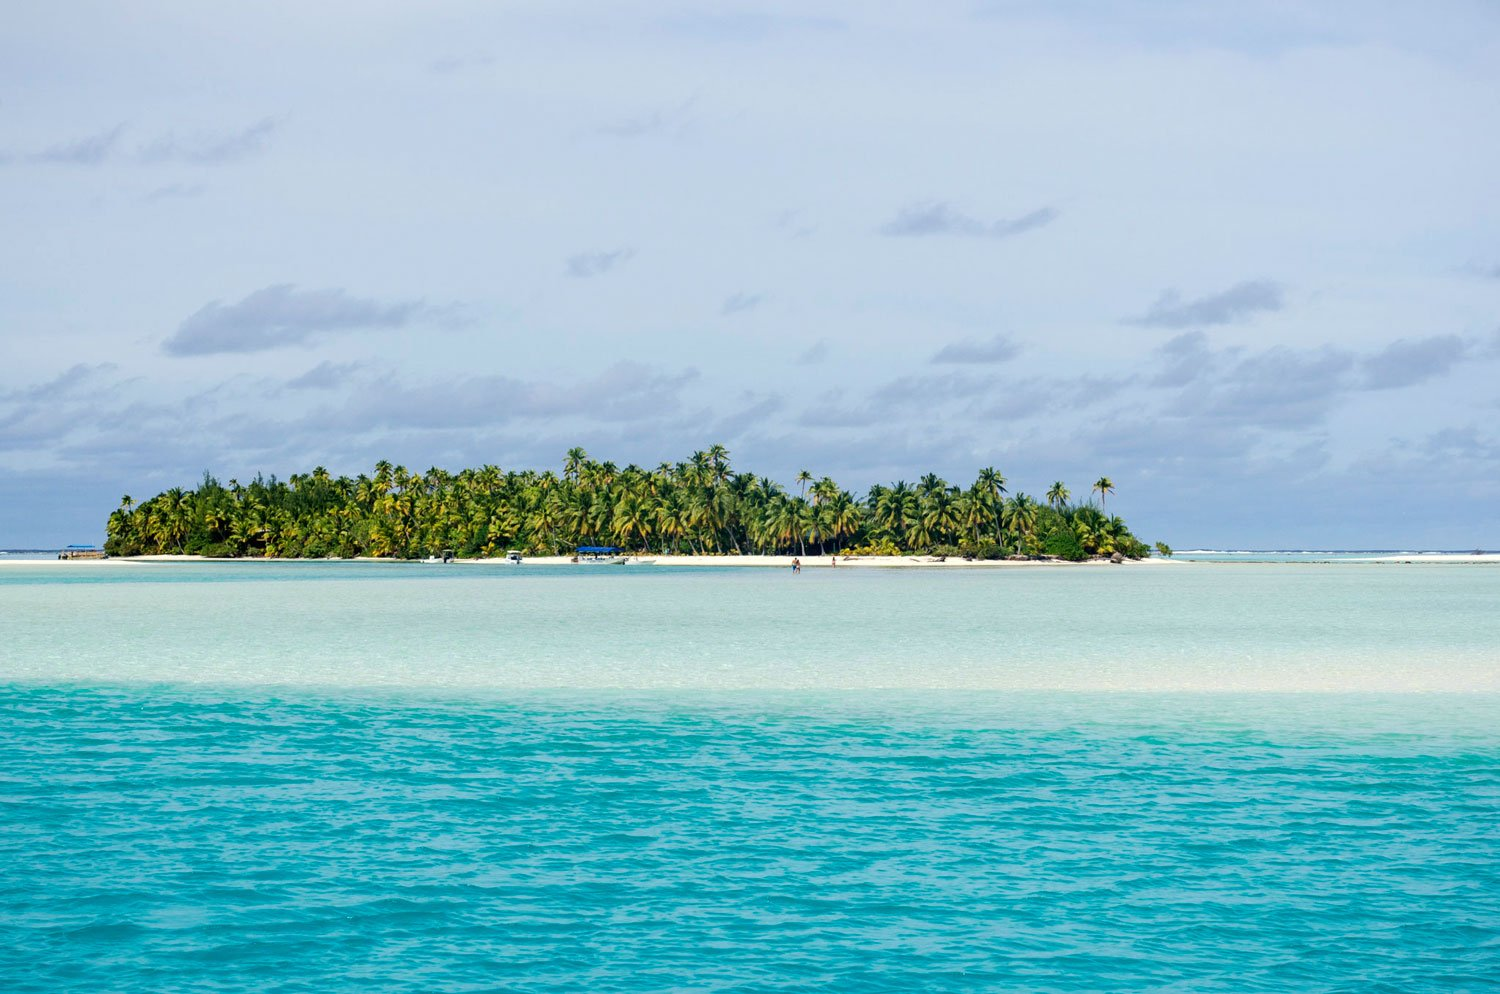 South Pacific Island Vacation destinations - aitutaki one foot island cook islands